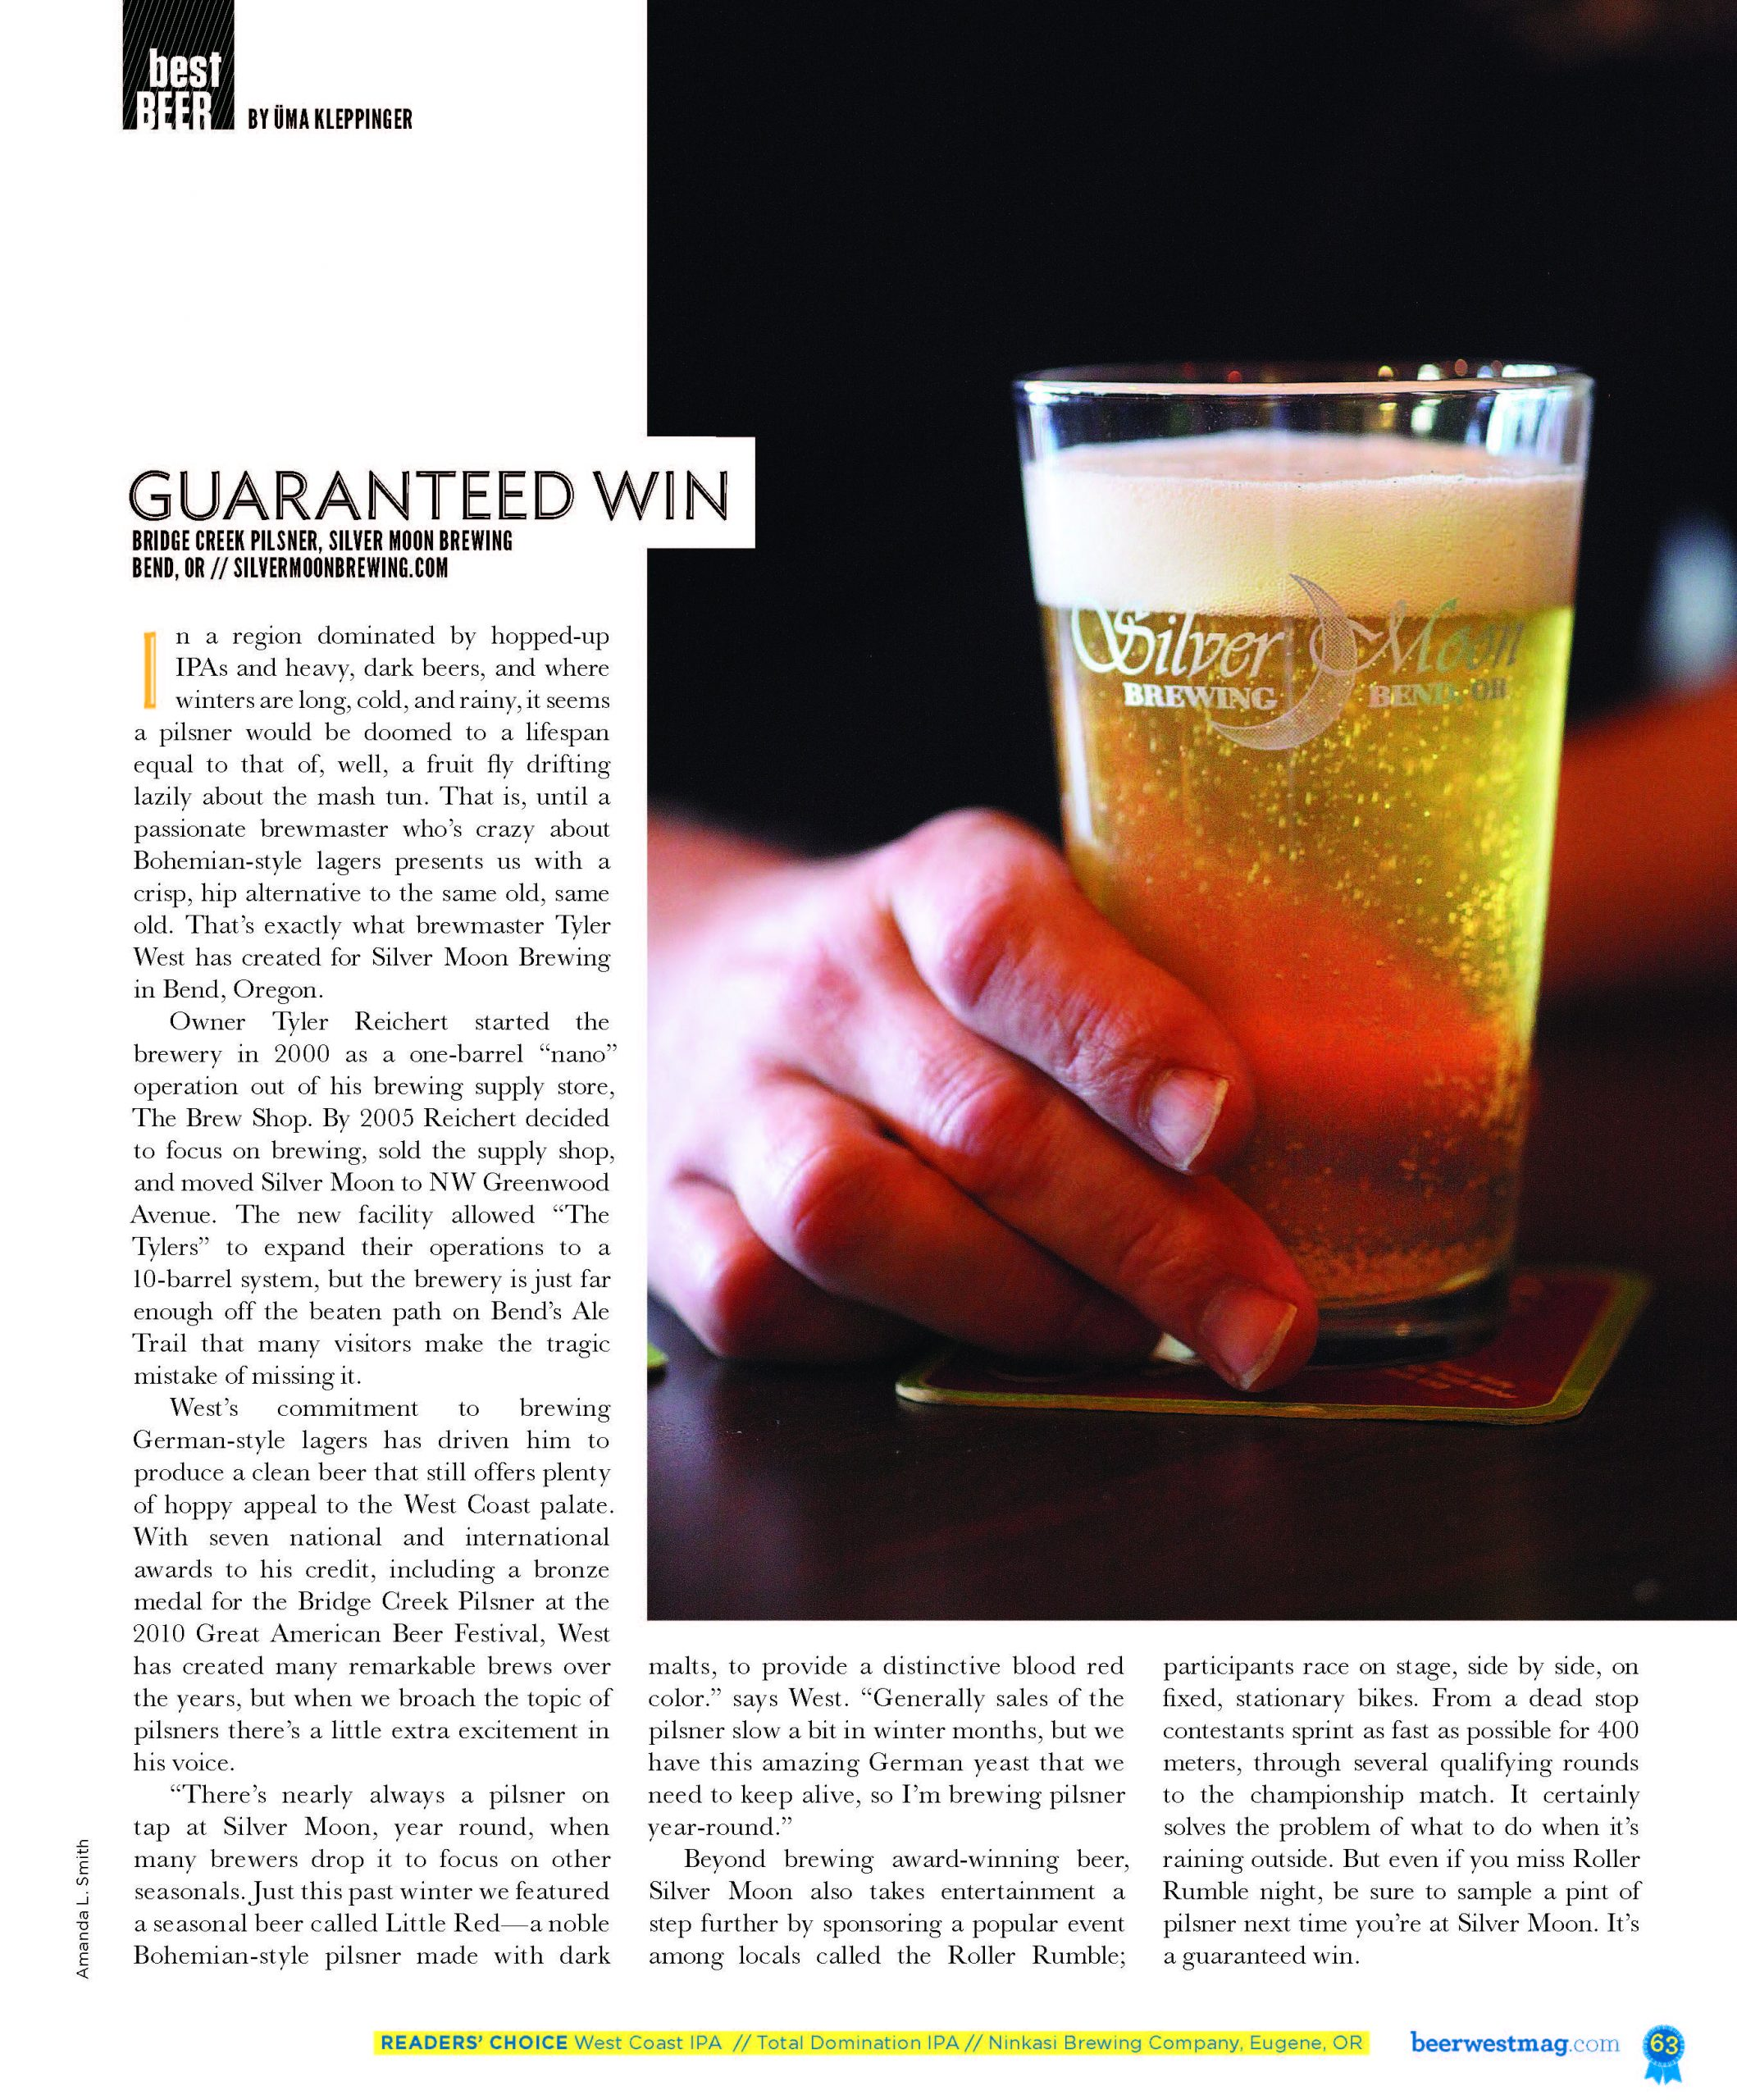 image of article of Silver Moon Brewery pilsner review by uma Kleppinger